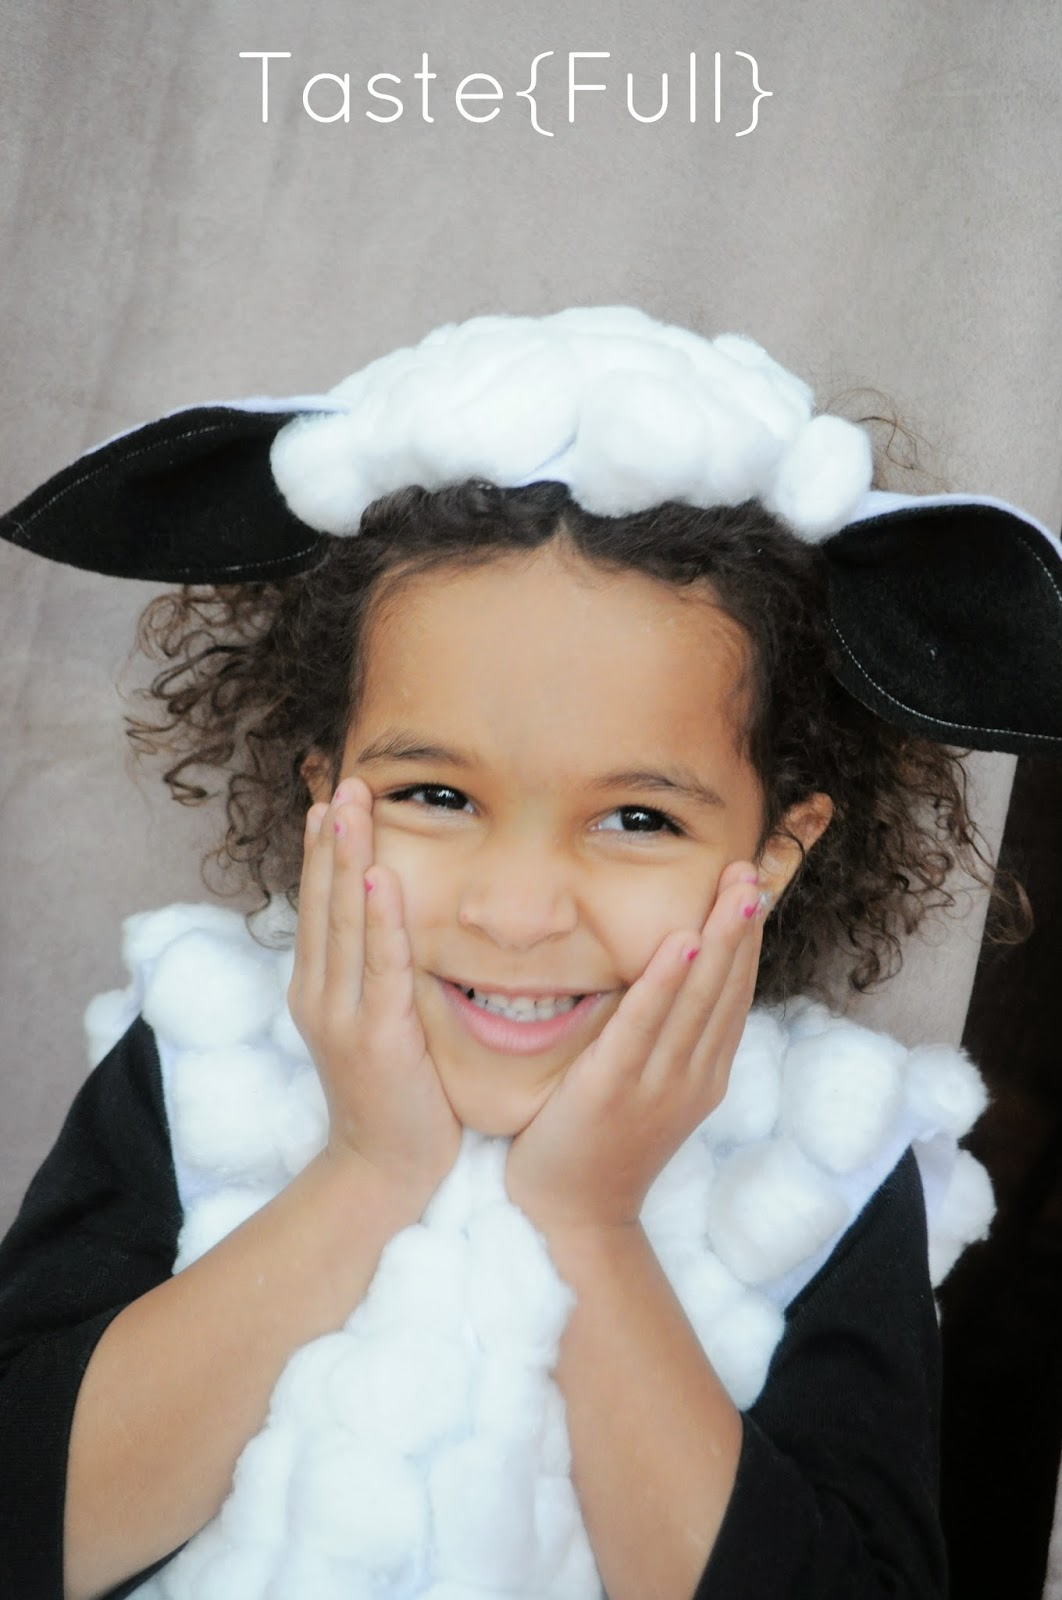 When my churchu0027s youth director asked for help making DIY sheep and cow costumes for the Christmas recital I didnu0027t hesitate! I love using my DIY skills ...  sc 1 st  Pretty Real & DIY Sheep and Cow Costumes for My Churchu0027s Christmas Recital ...